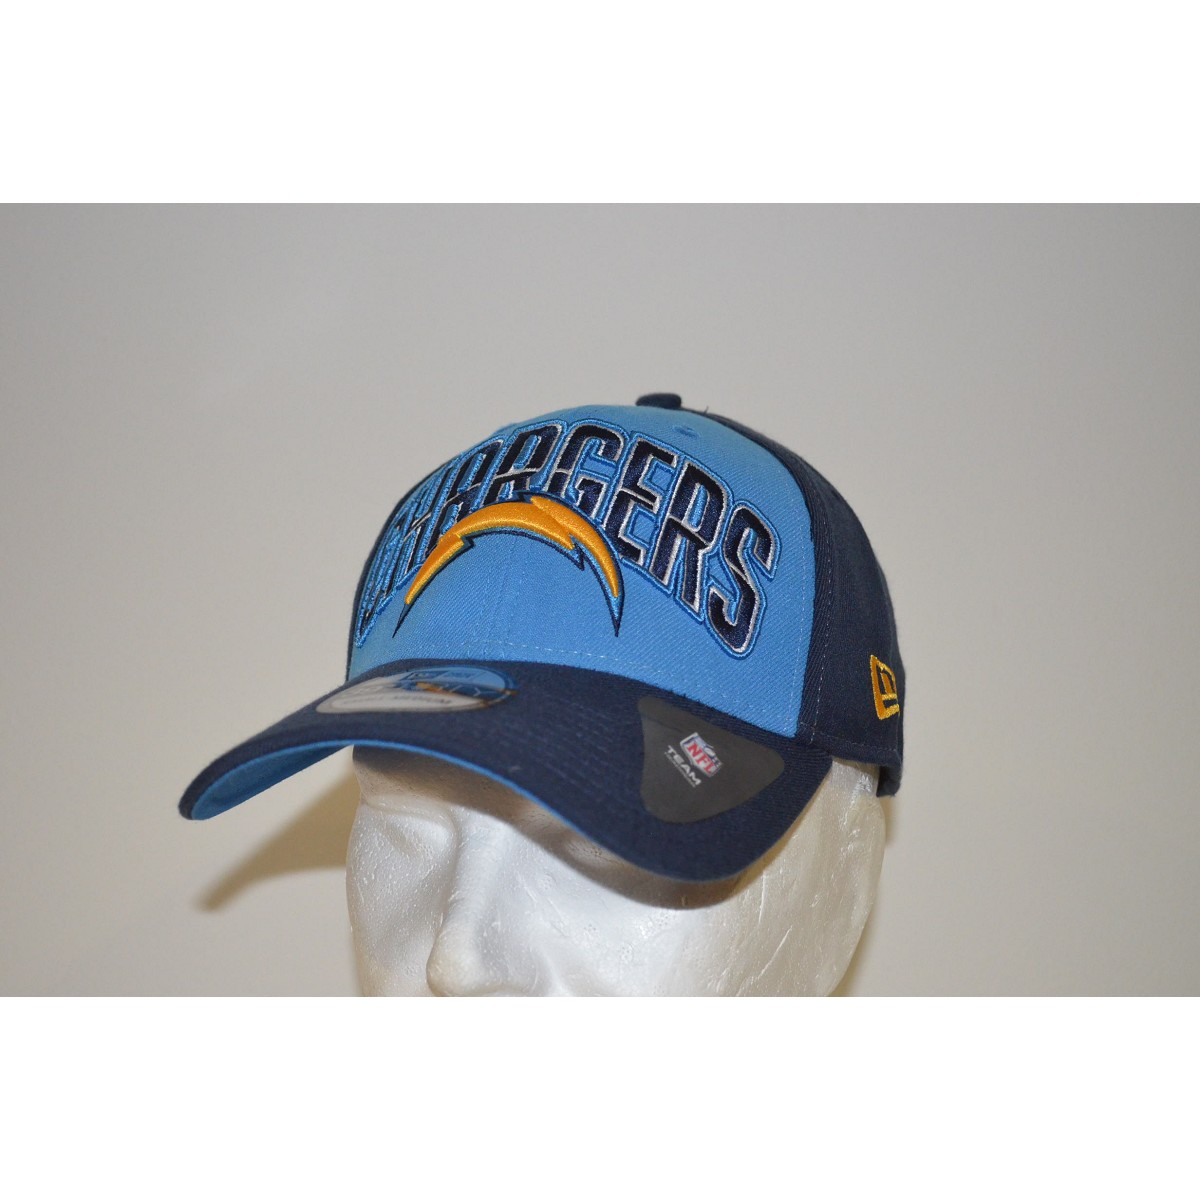 San Diego Chargers Fleece Fabric: CAPPELLO NEW ERA 39THIRTY DRAFT 13 SAN DIEGO CHARGERS